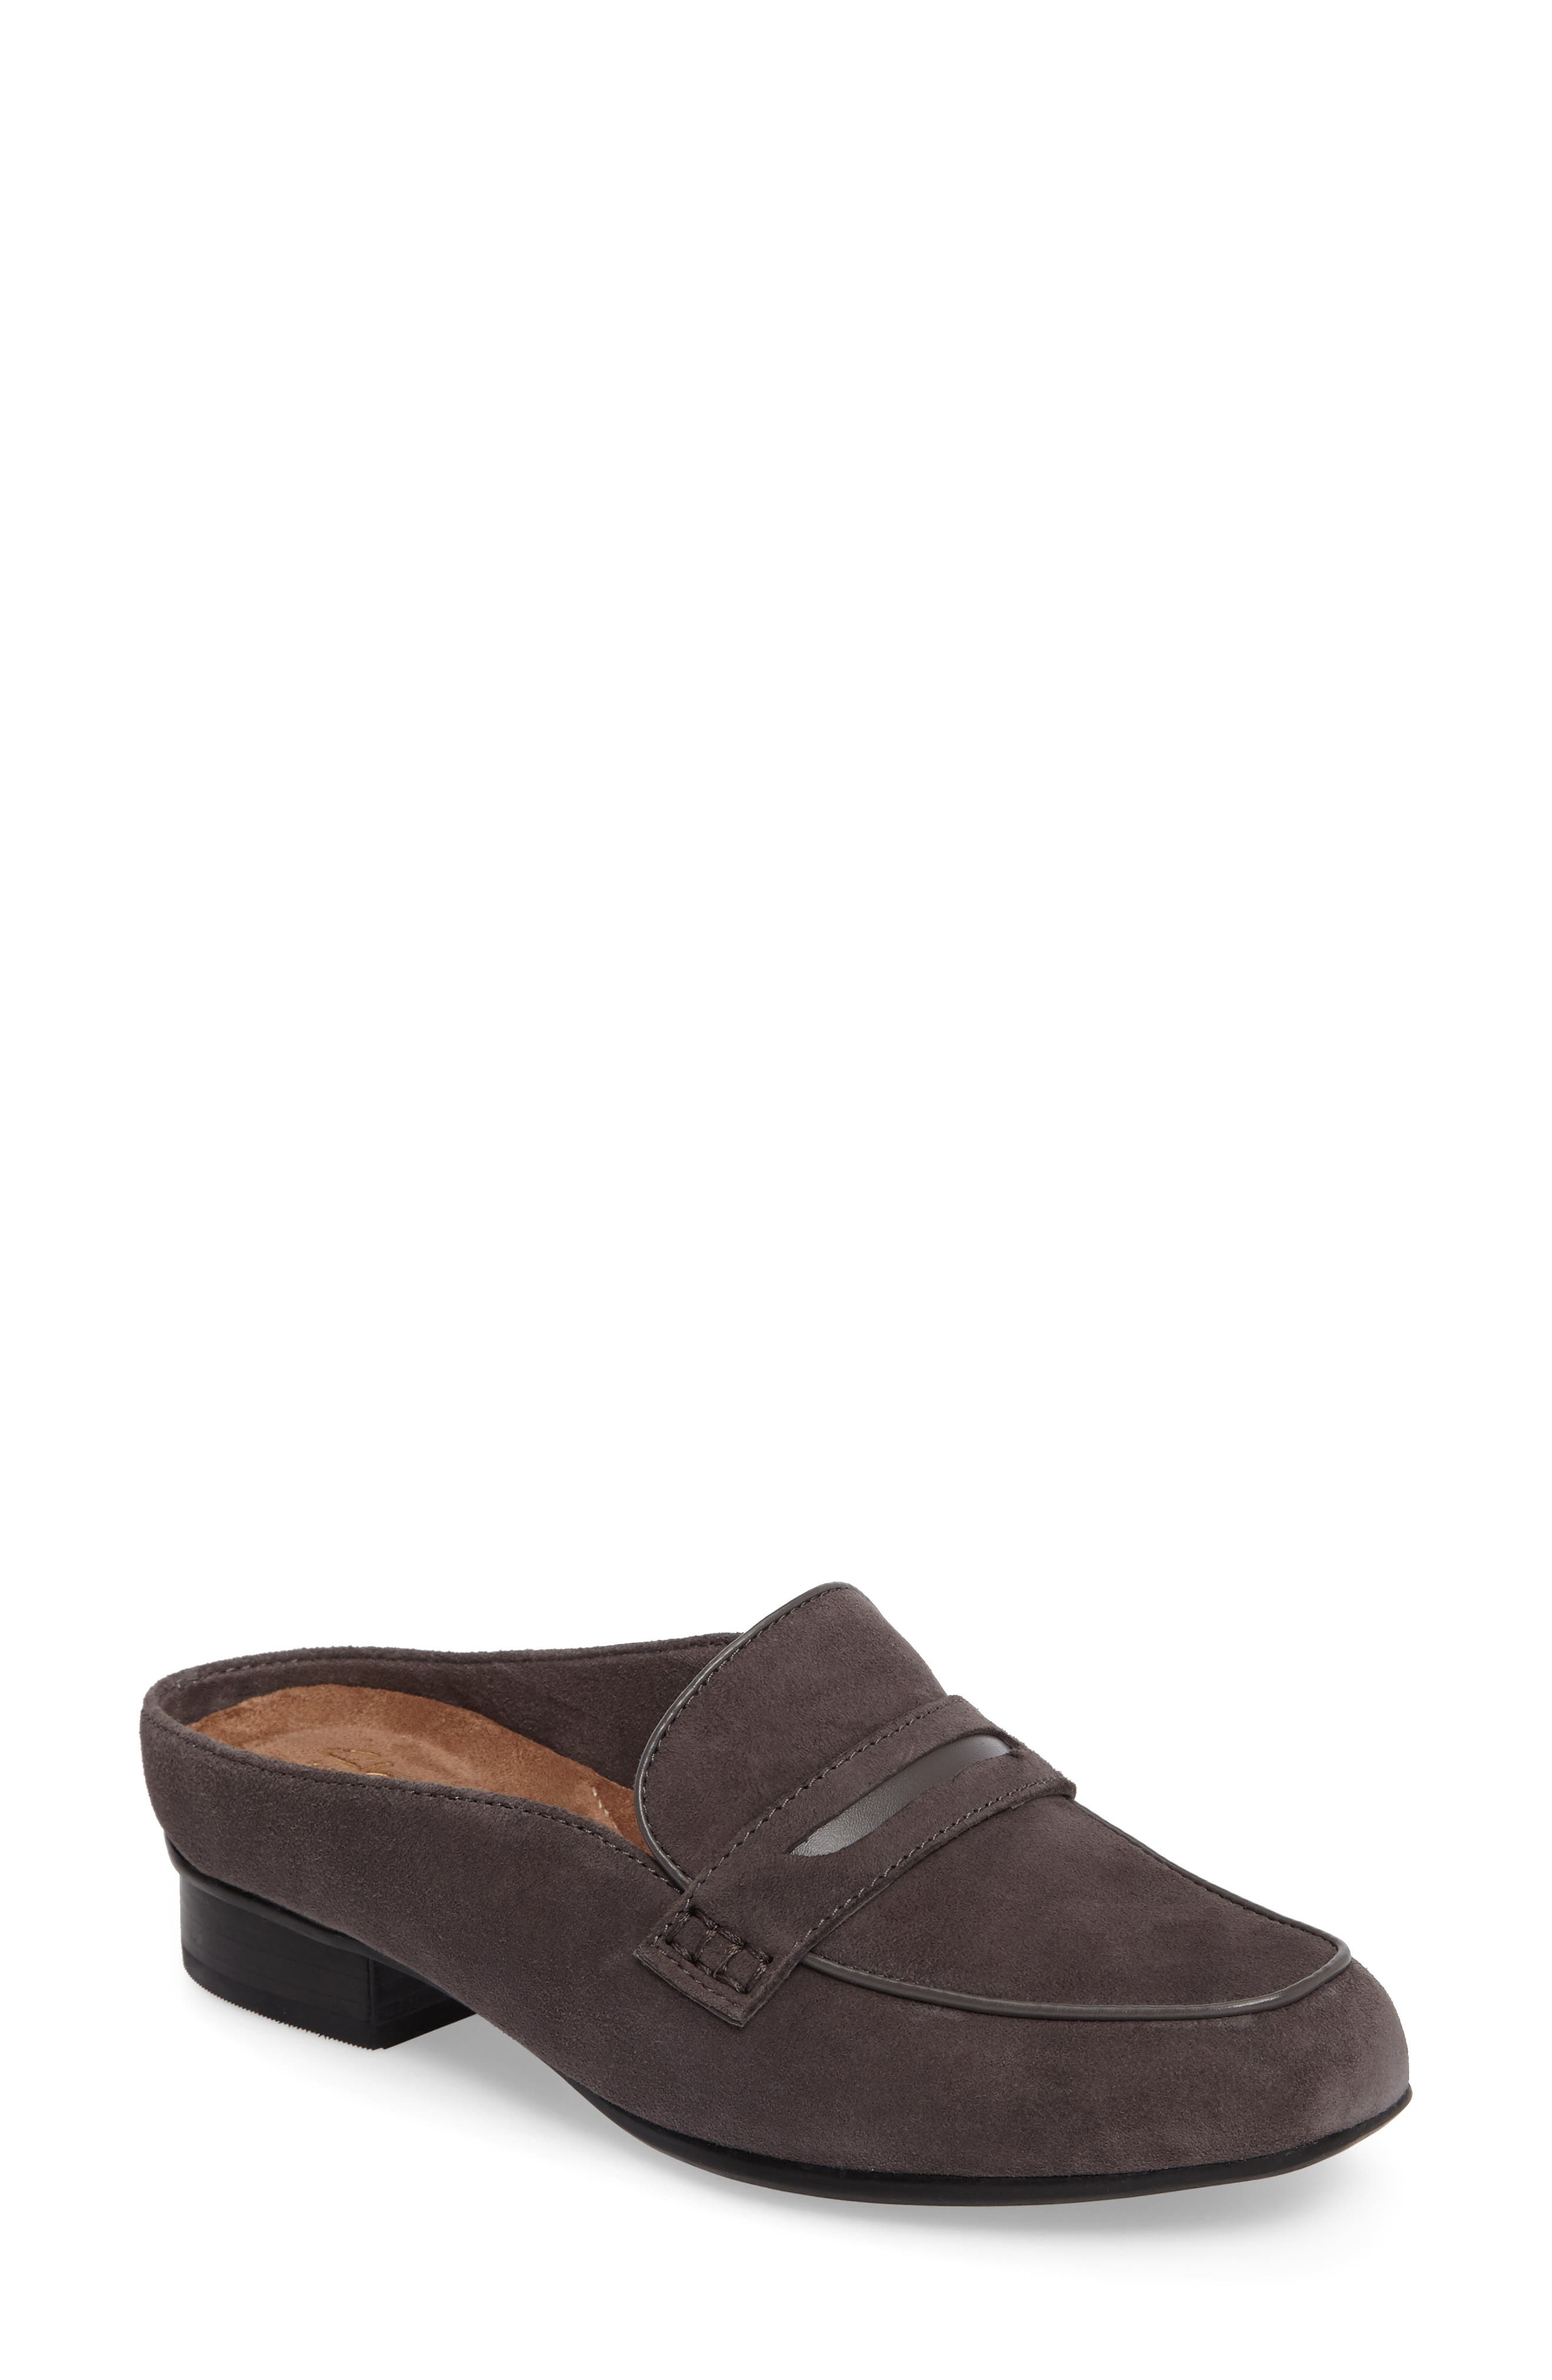 Clarks® Keesha Donna Loafer Mule (Women)